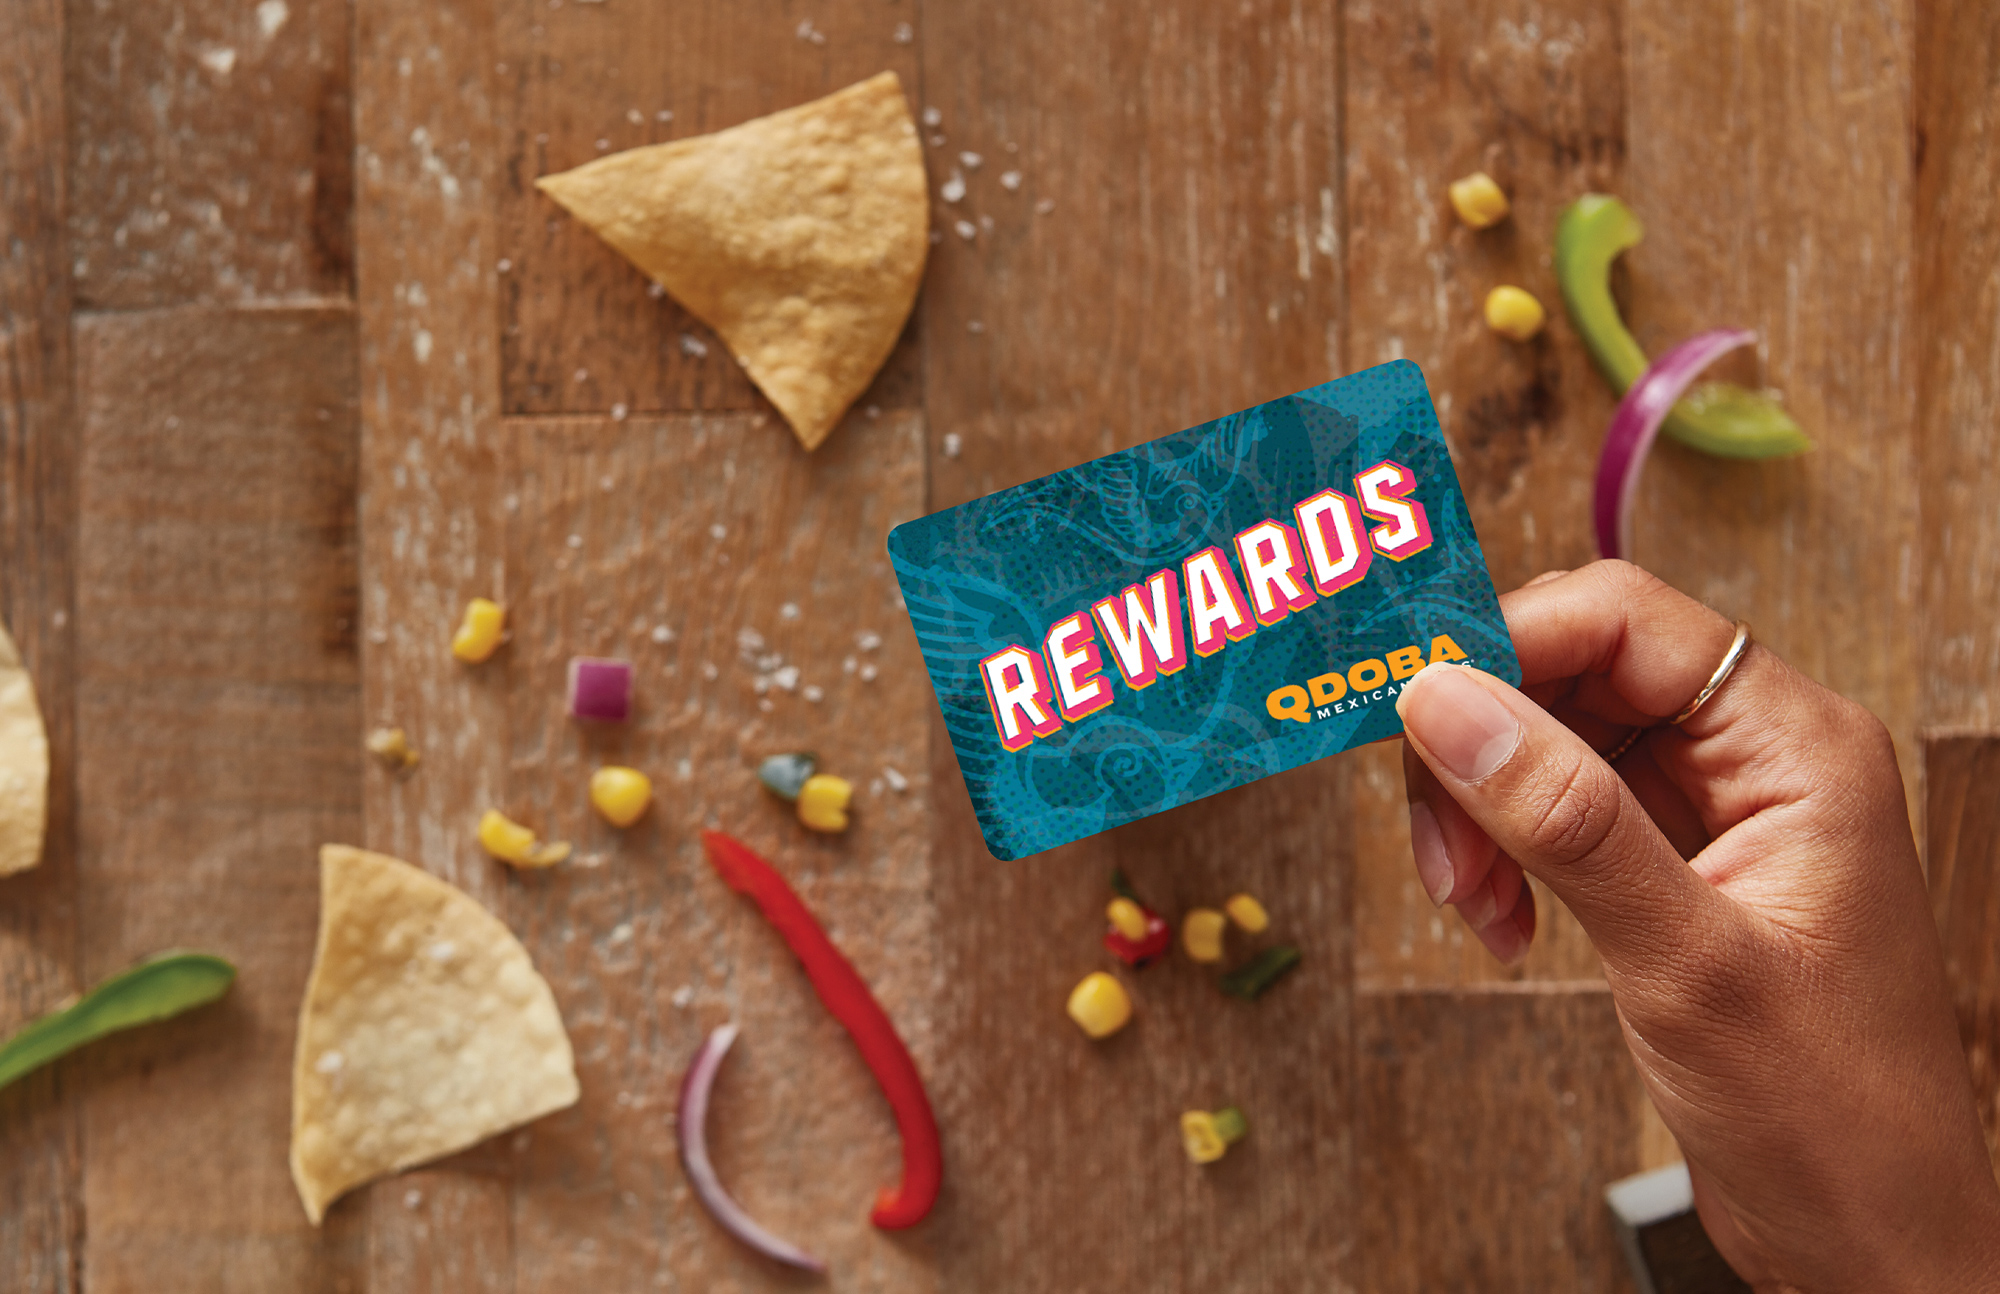 Qdoba rewards lets you earn points for every dollar spent at QDOBA. Redeem your points to unlock free food rewards!